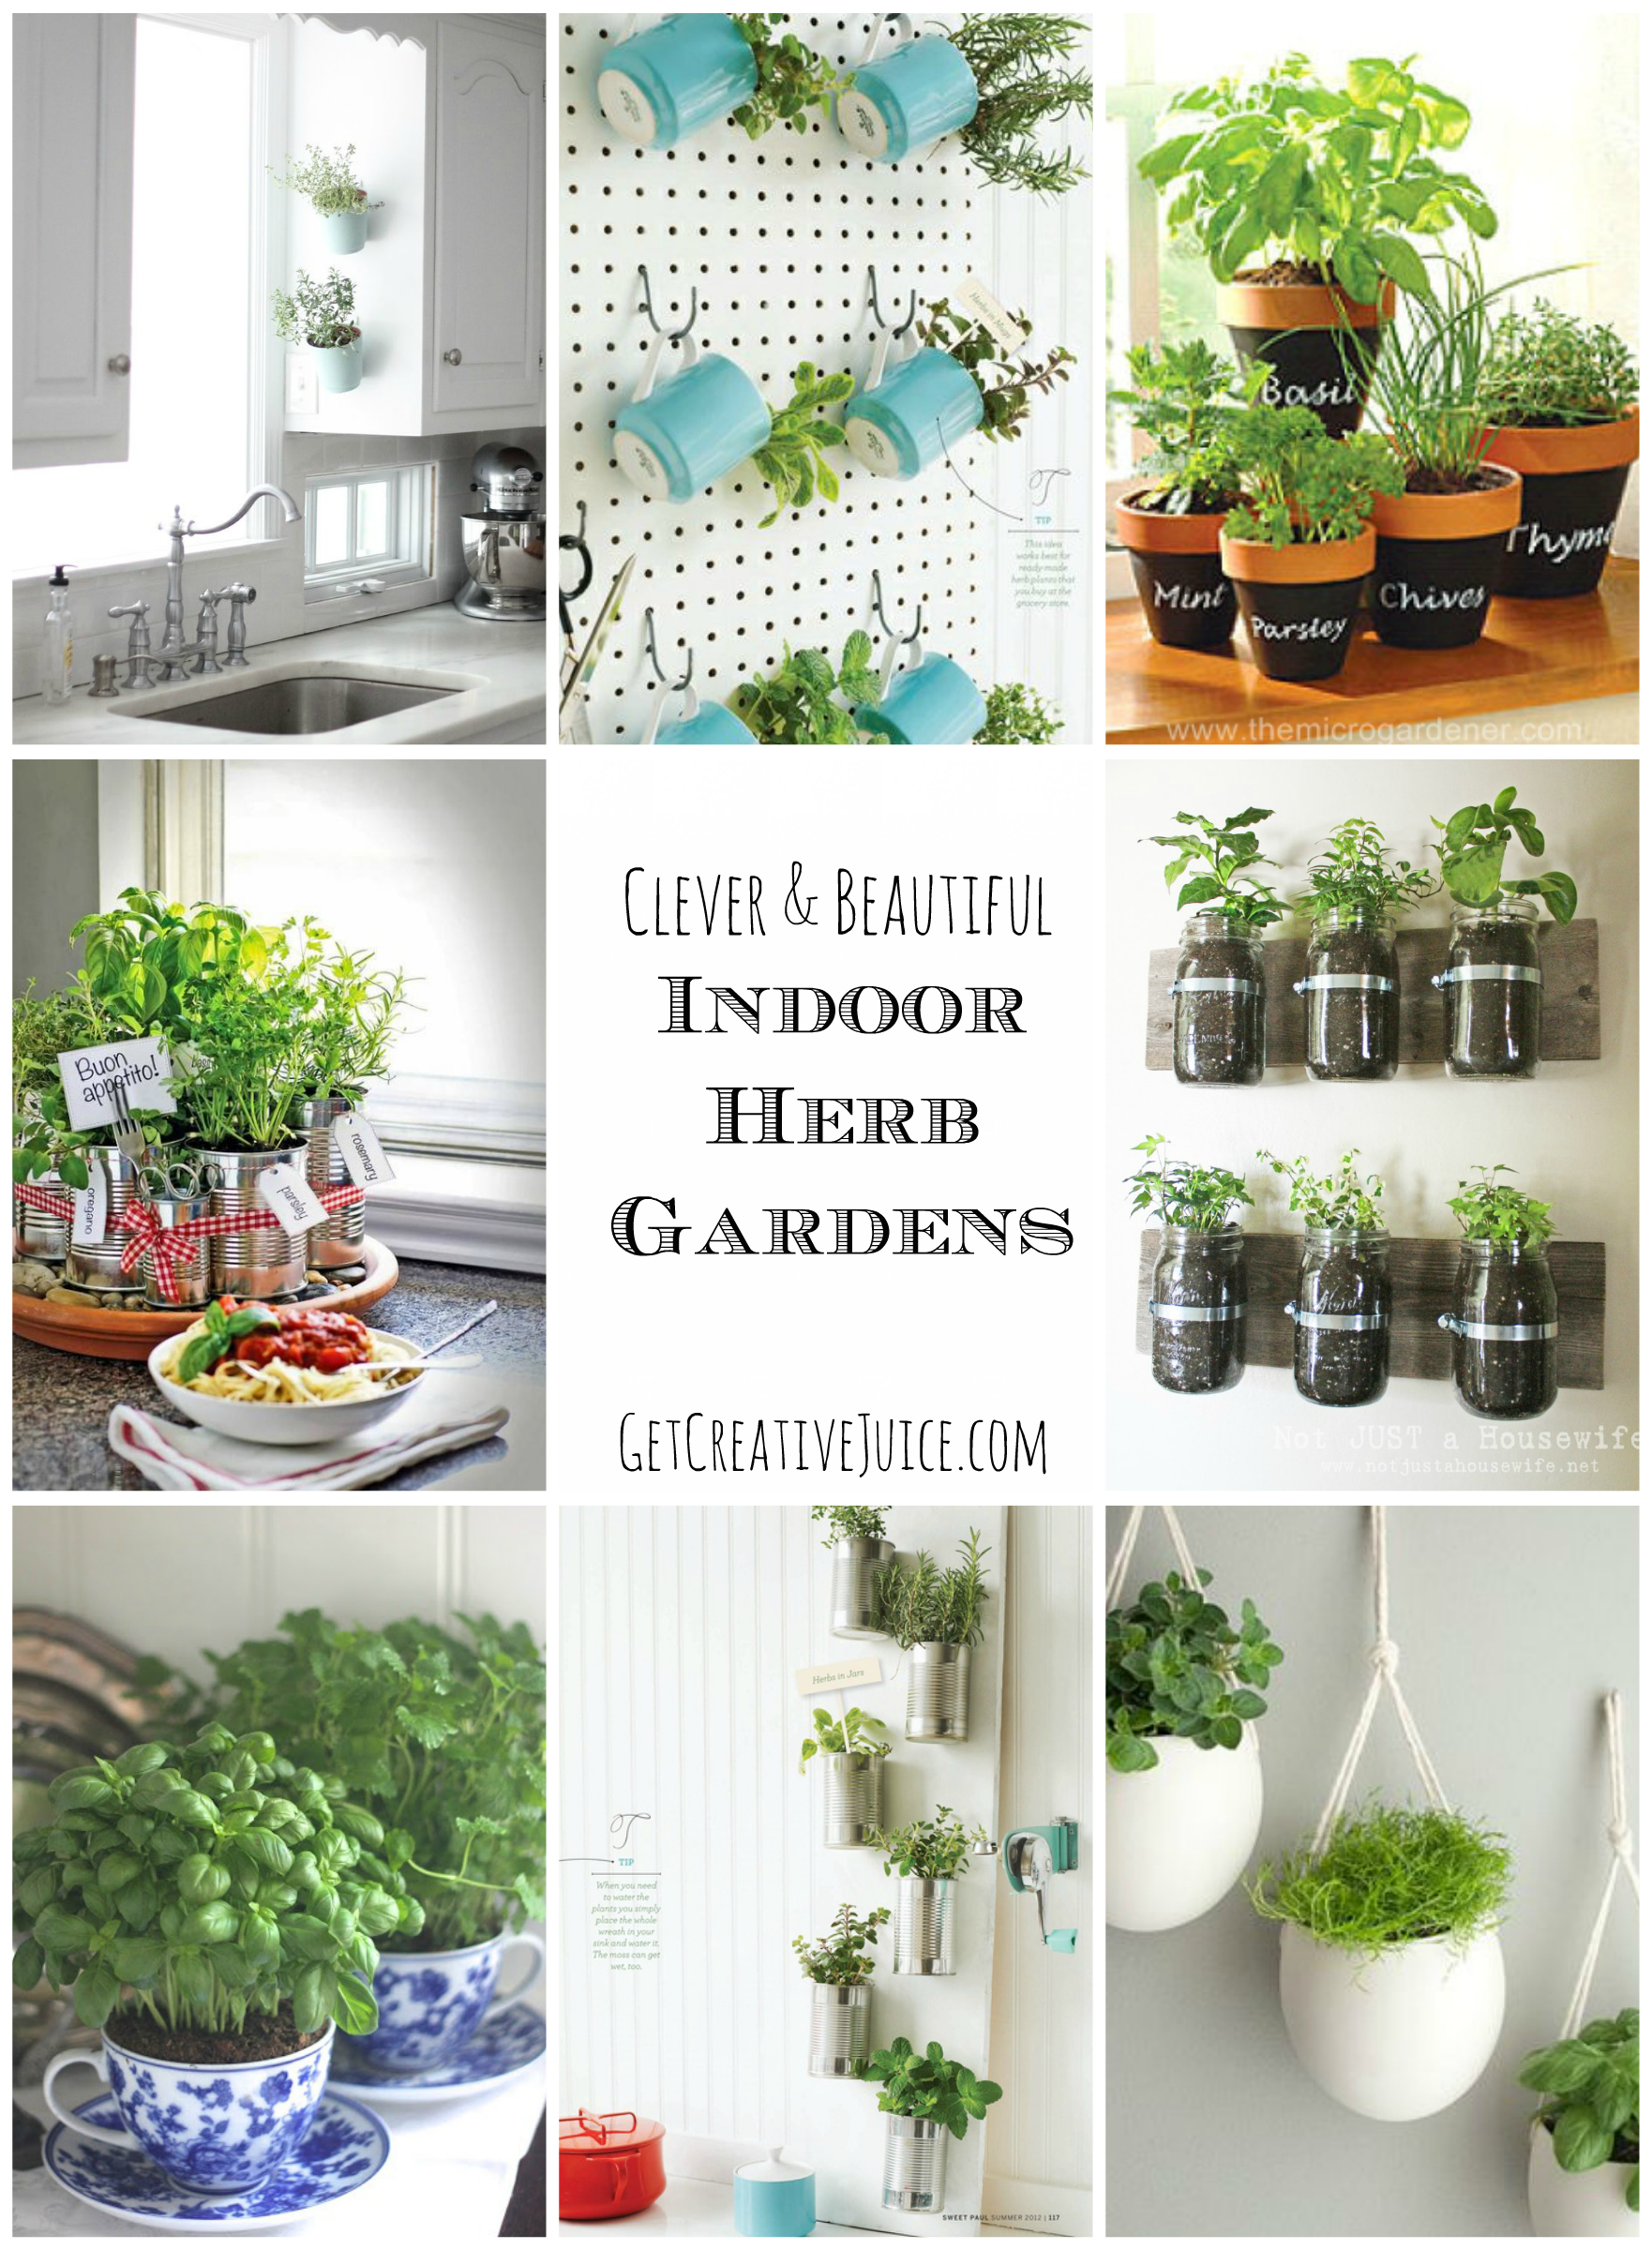 Indoor Kitchen Herb Garden Kit Indoor Herb Garden Ideas Creative Juice